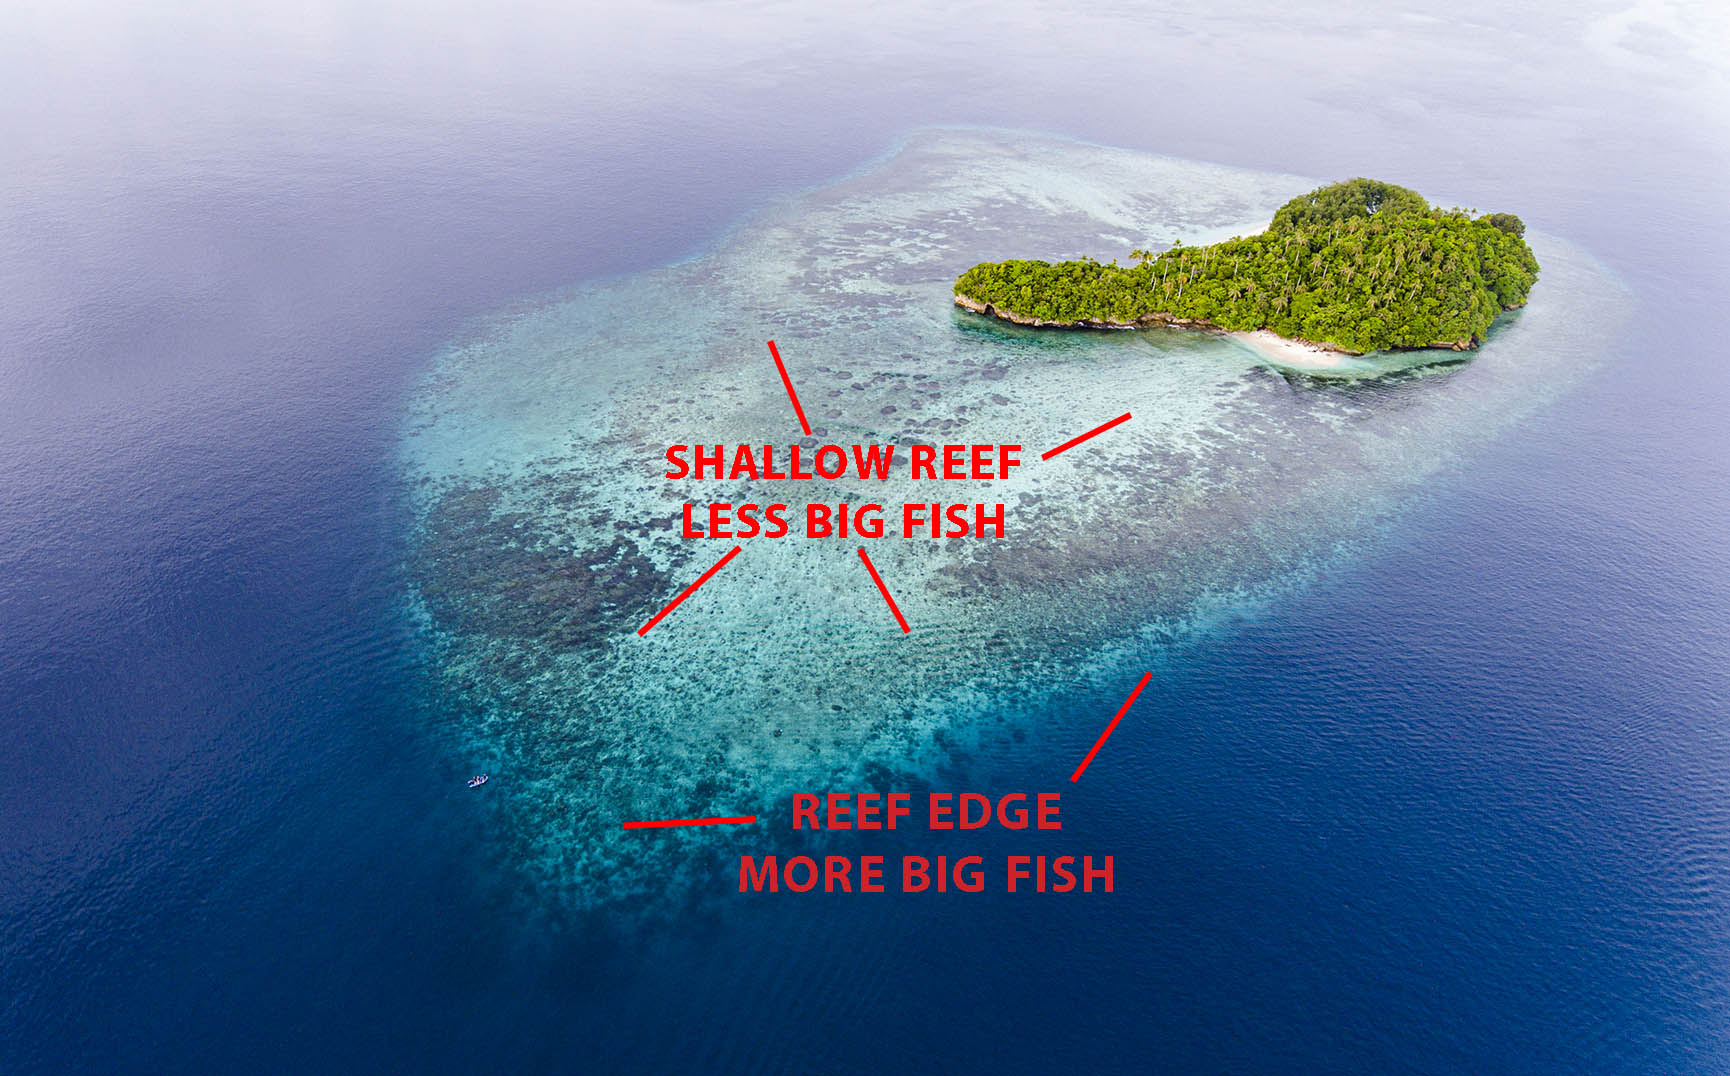 Diagram of where to find big fish on a reef